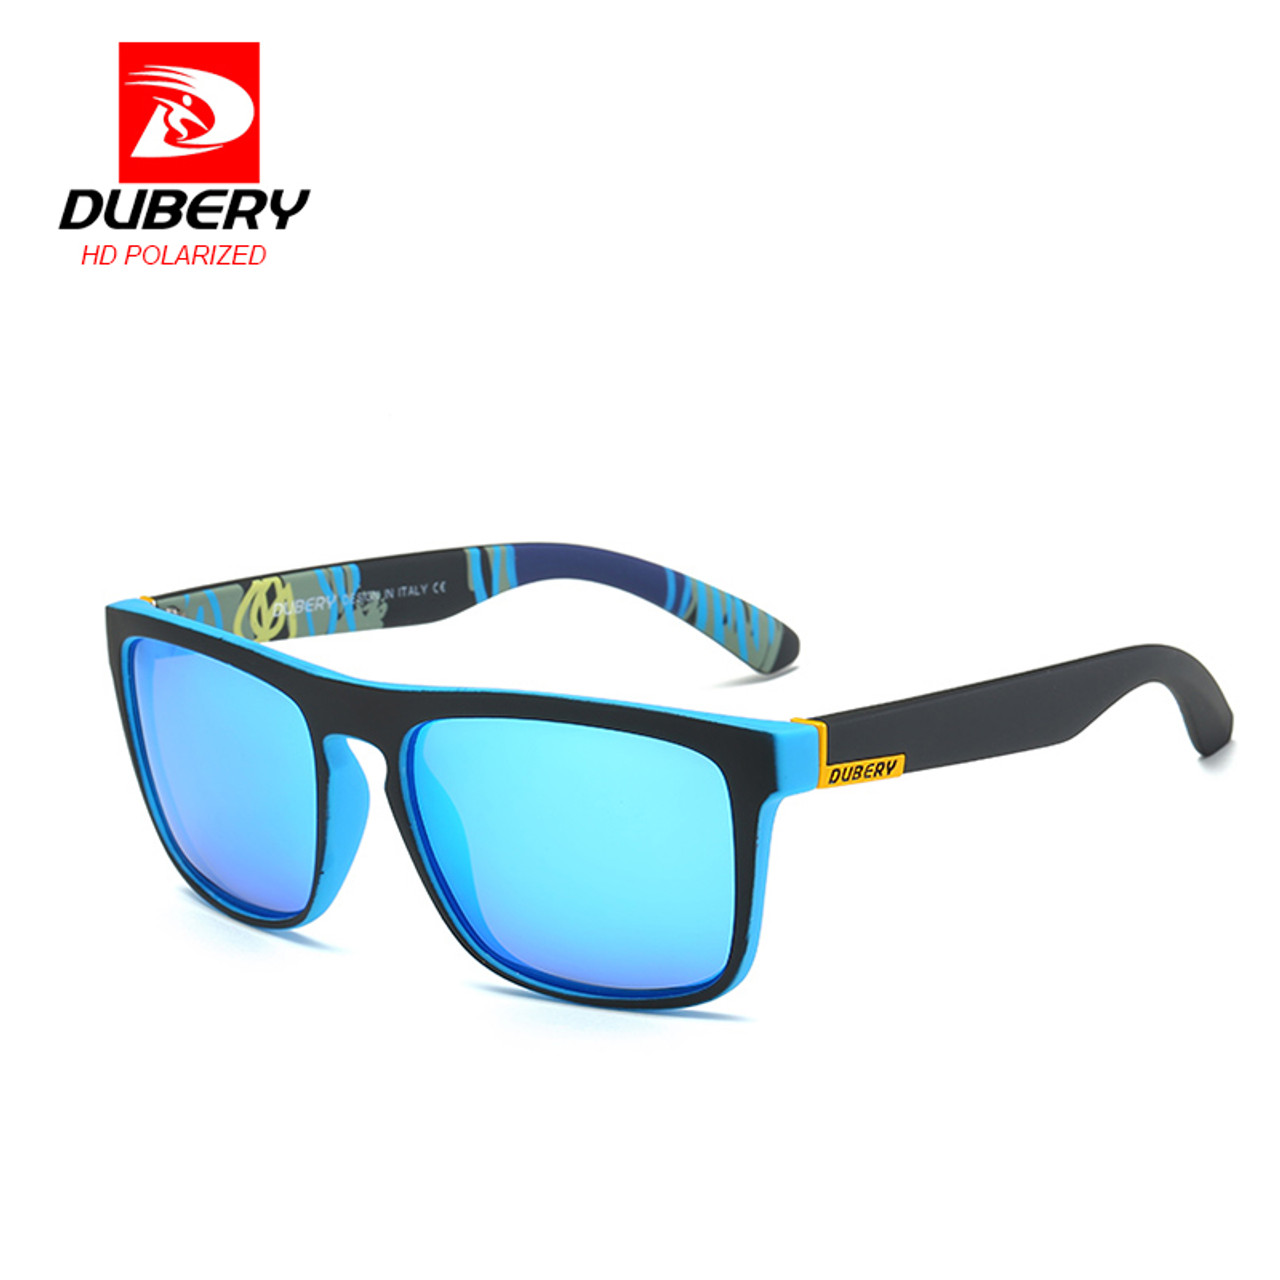 5ee716d143 DUBERY Polarized Sunglasses Men s Aviation Driving Shades Male Sun Glasses  For Men Retro Cheap 2017 Luxury ...